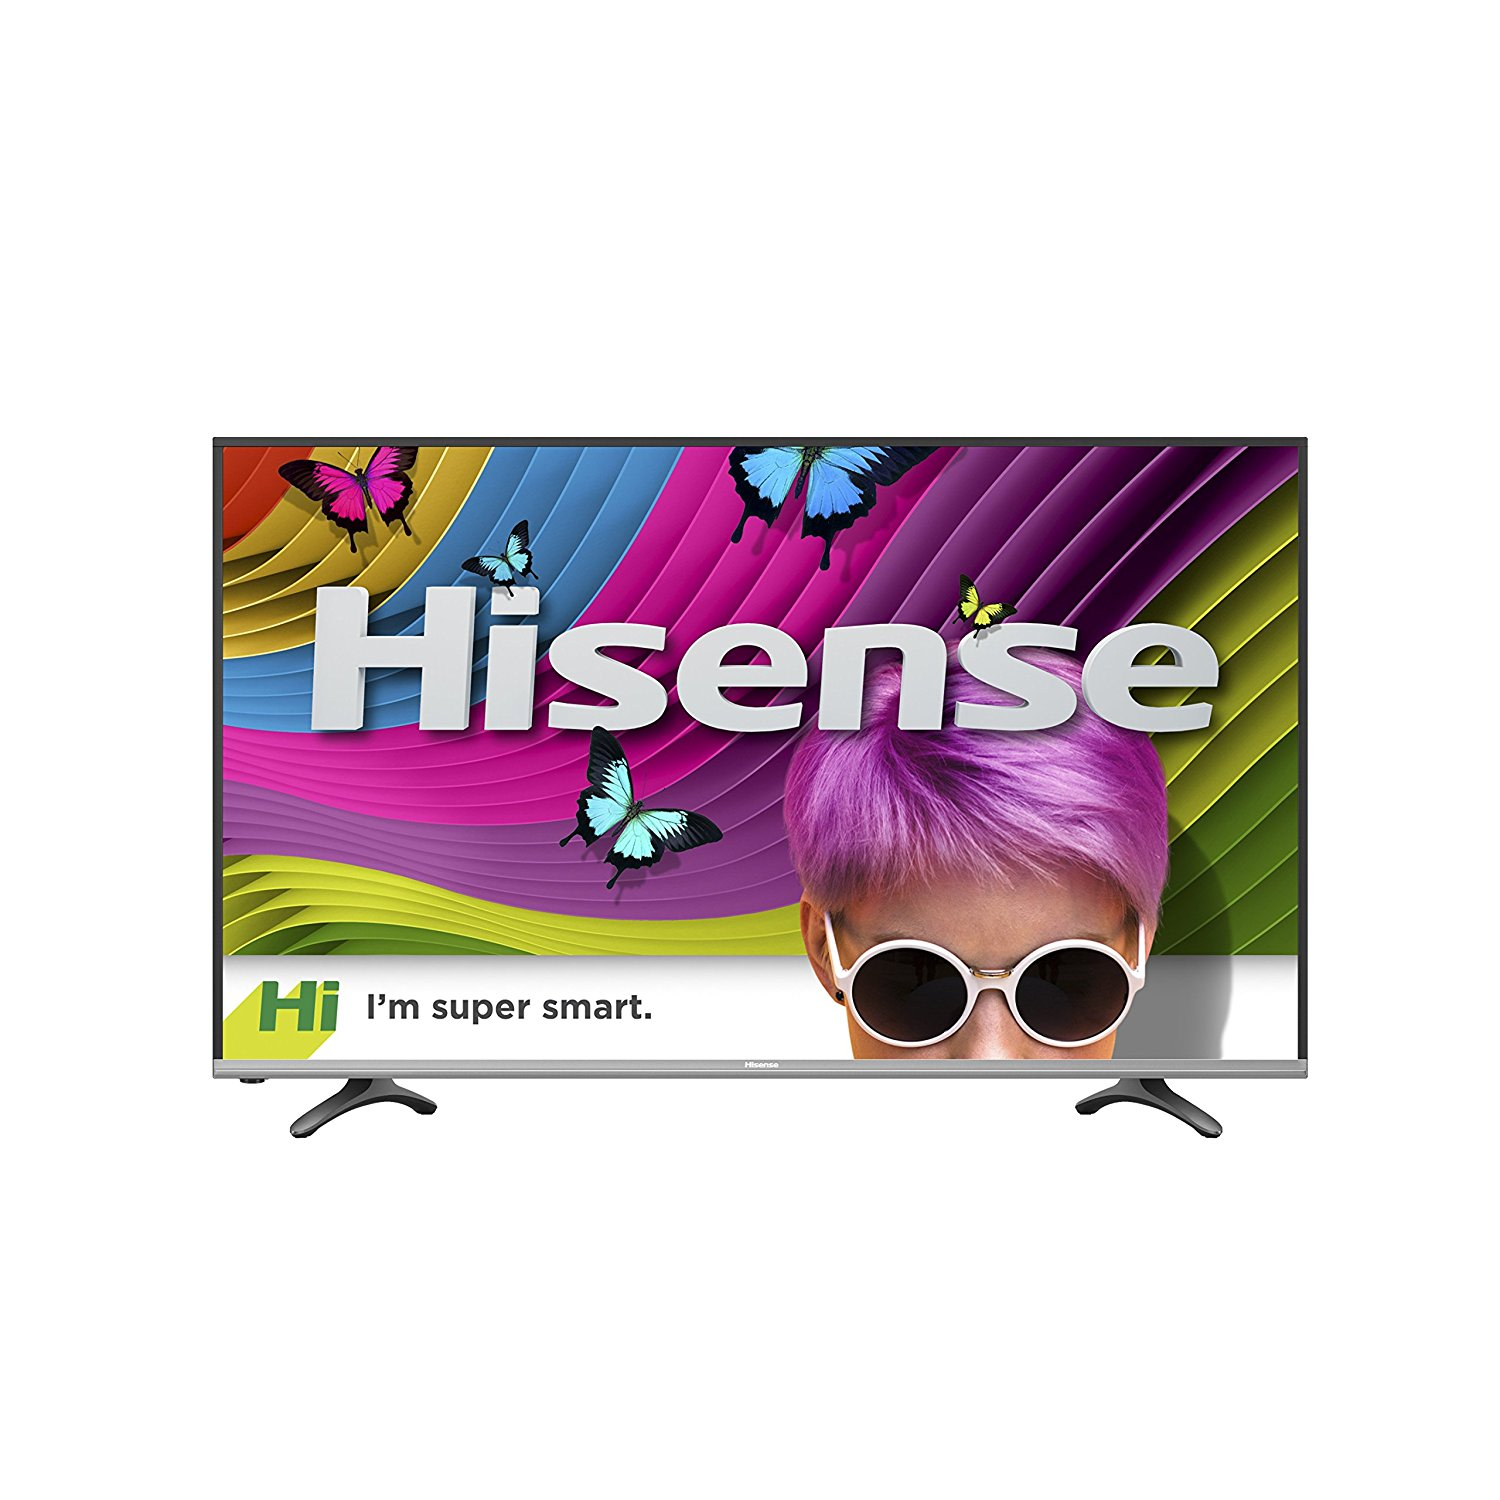 An image of Hisense H8 55H8C 55-Inch HDR Flat Screen 4K LED 60Hz TV with Motion Rate 120